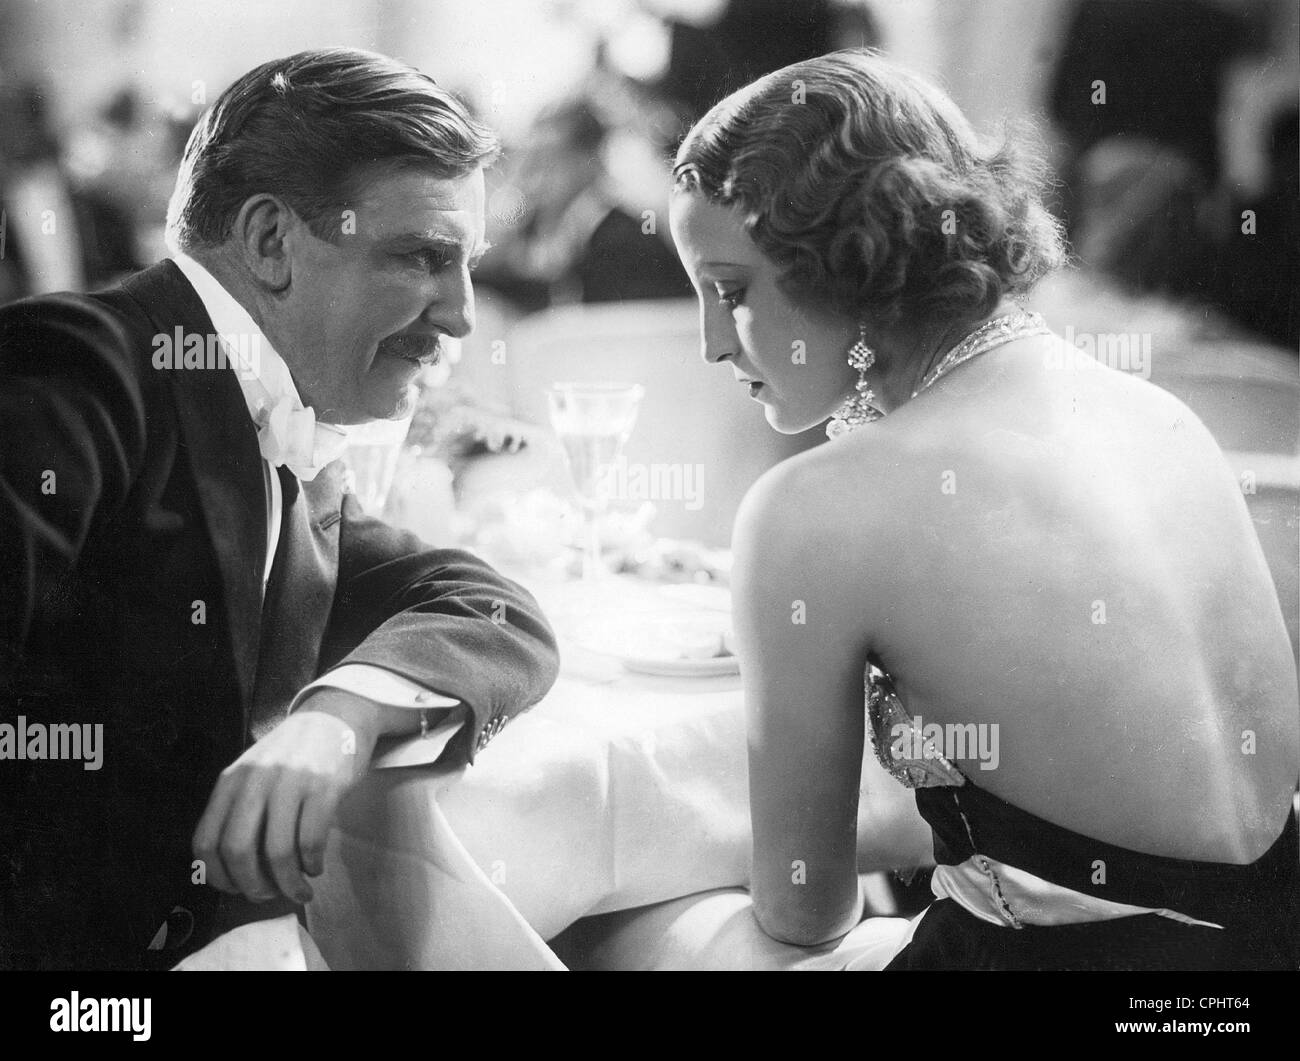 Rudolf Forster and Brigitte Helm in 'The Countess of Monte Christo', 1932 - Stock Image